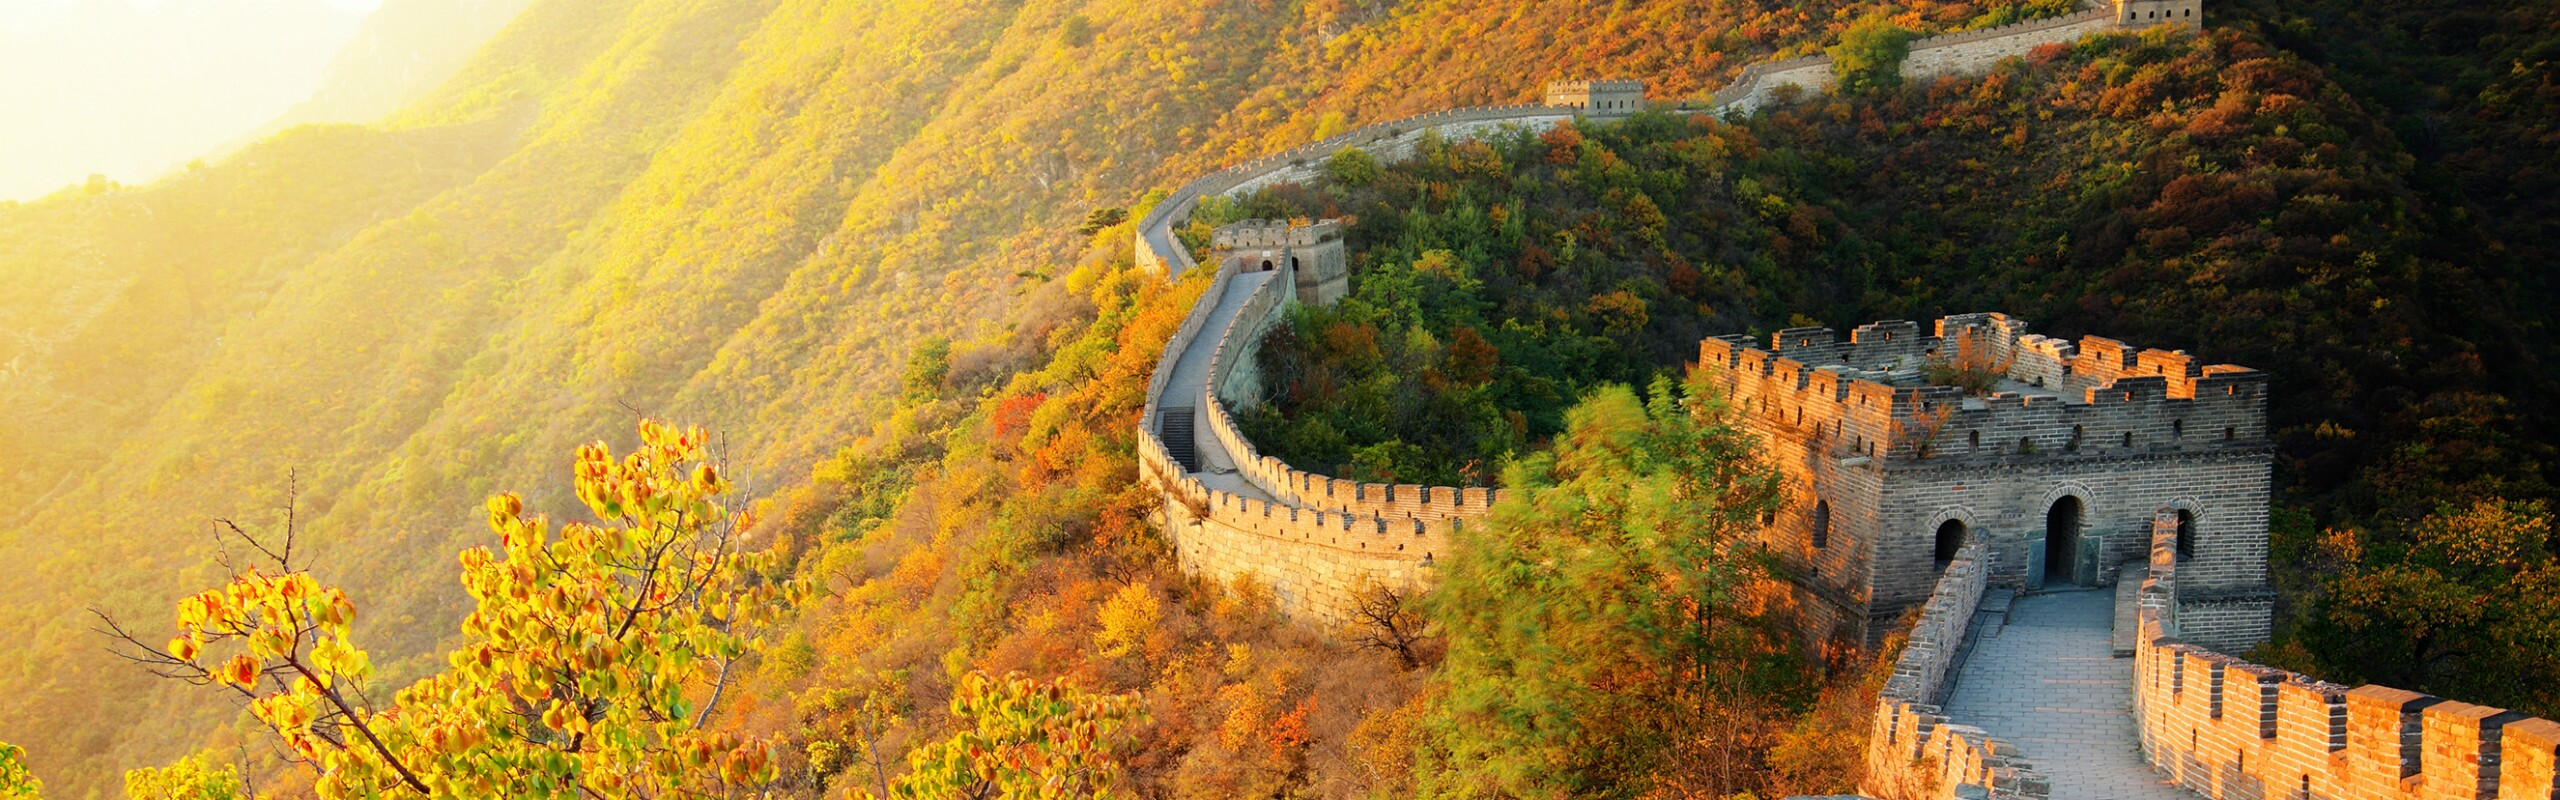 1-Day Beijing Great Wall Layover Tour